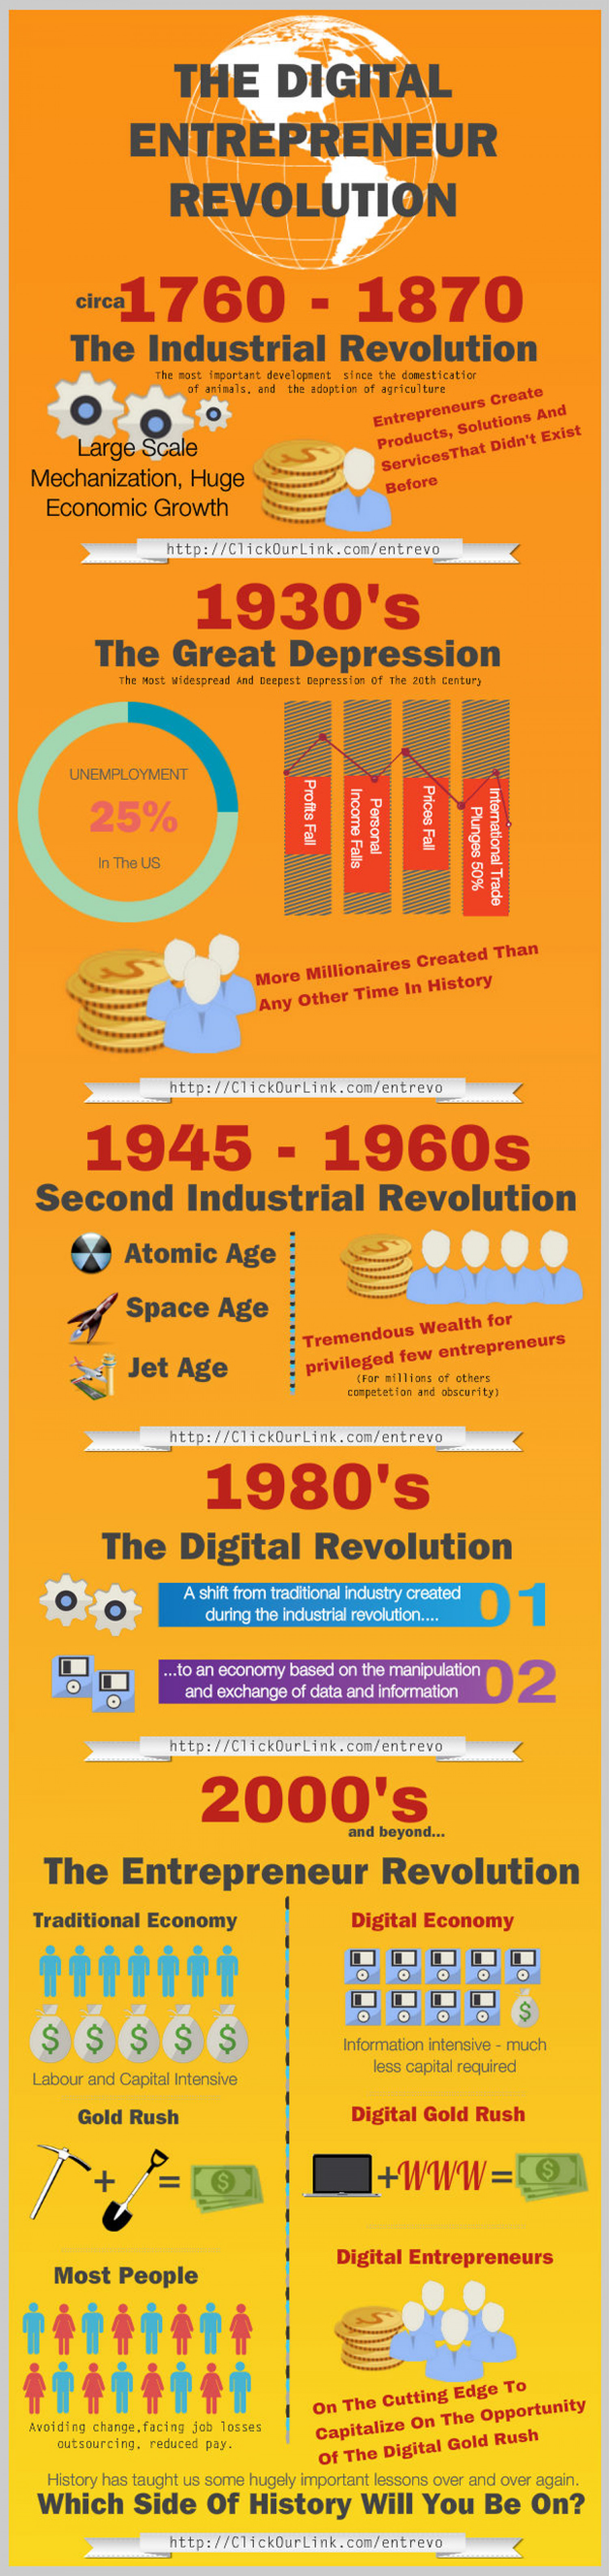 The Digital Entrepreneur Revolution Infographic